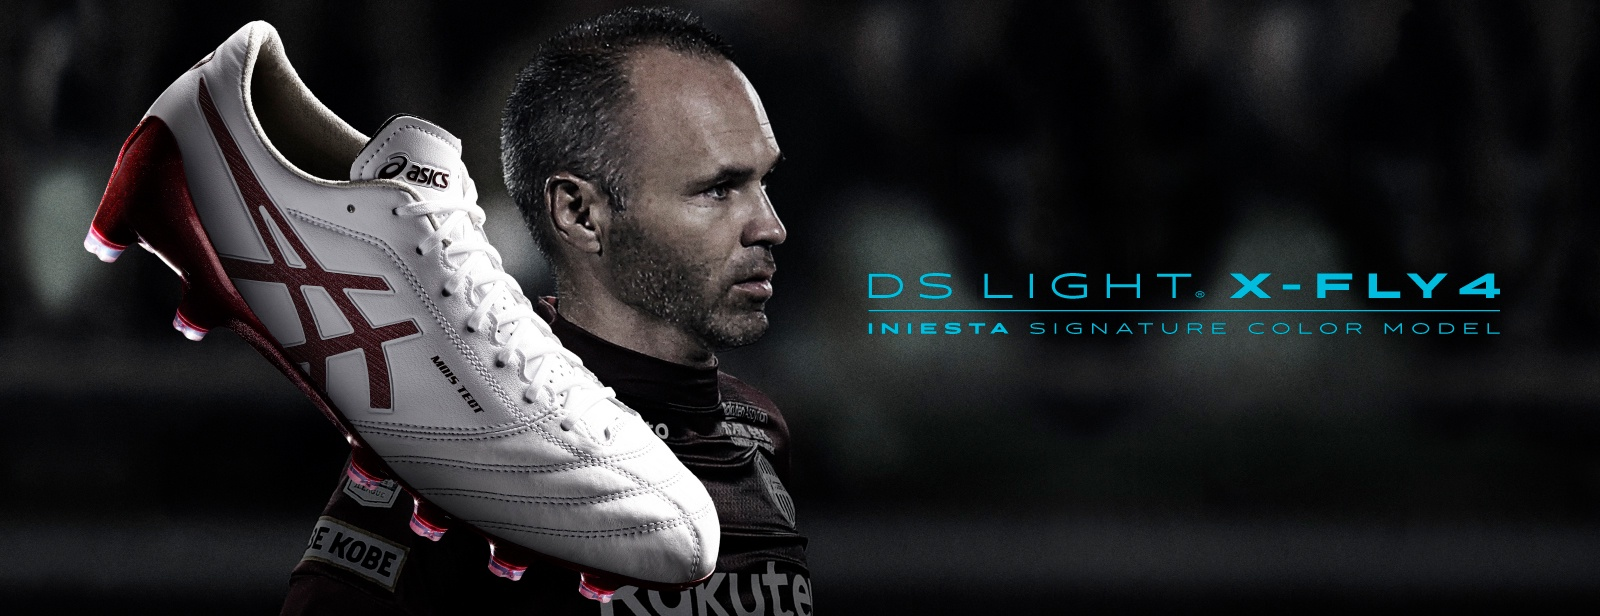 DS LIGHT X-FLY4 INIESTA SIGNATURE COLOR MODEL